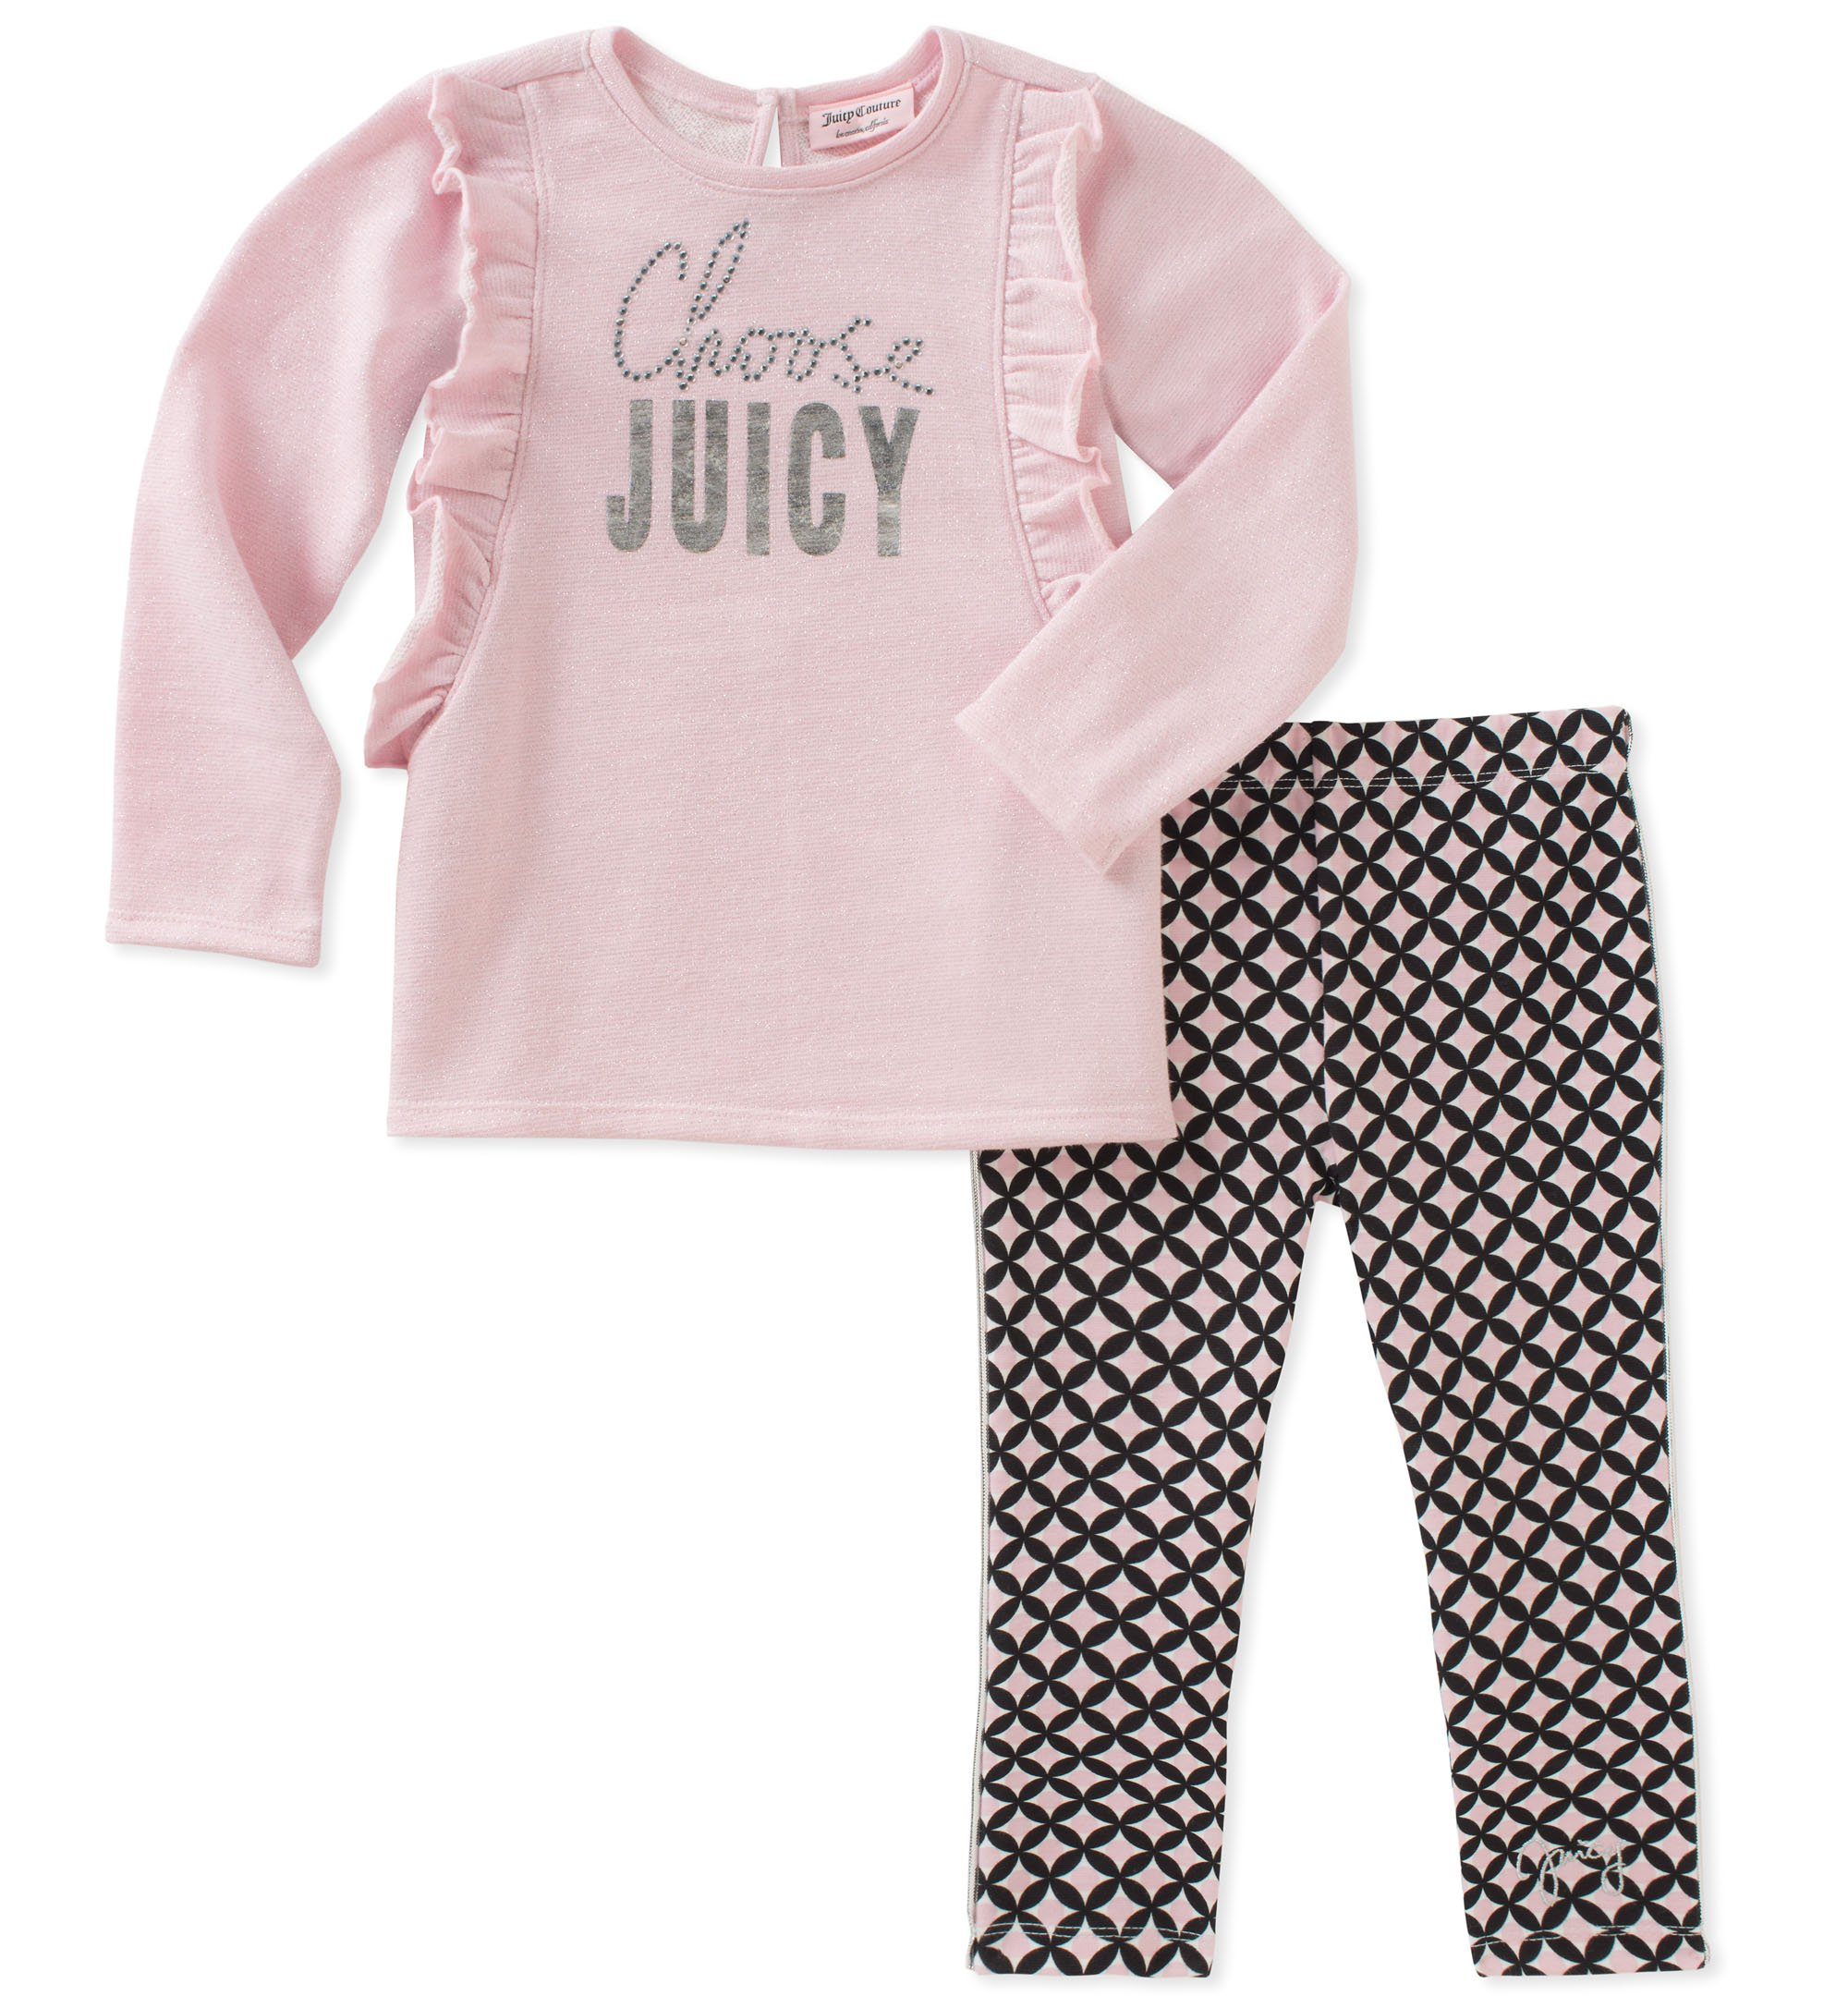 Juicy Couture Girls' Big 2 Pieces Long Sleeves Tunic Set, Pink 7